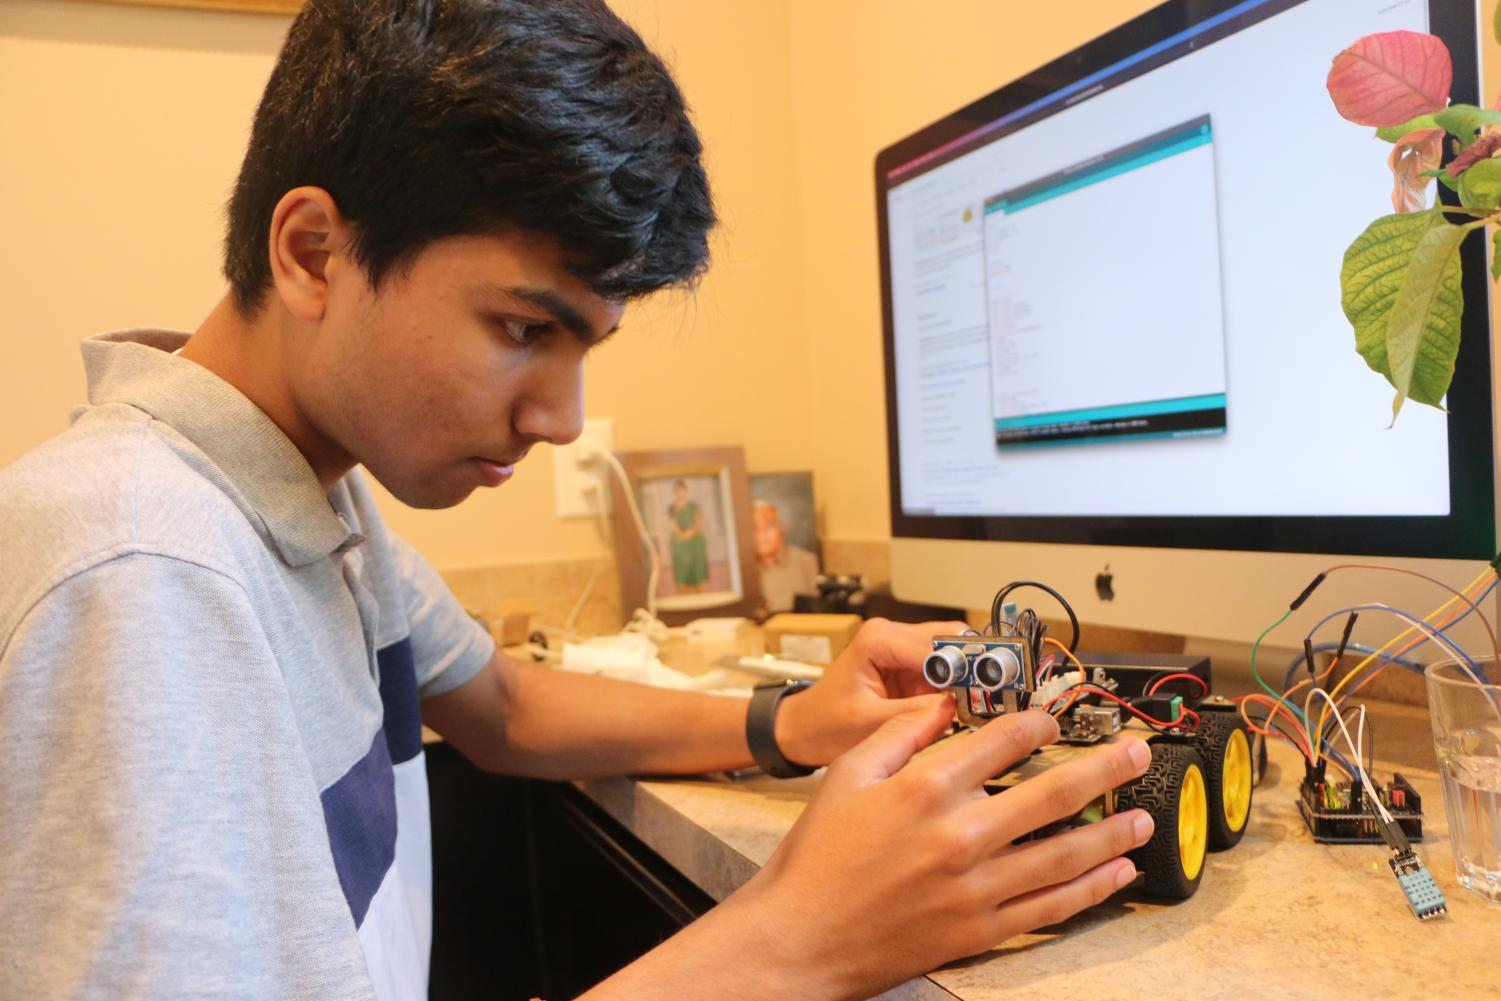 Senior Kashyap Akkinapally works on an engineering project. Akkinapally said he enjoys innovating to help his community.